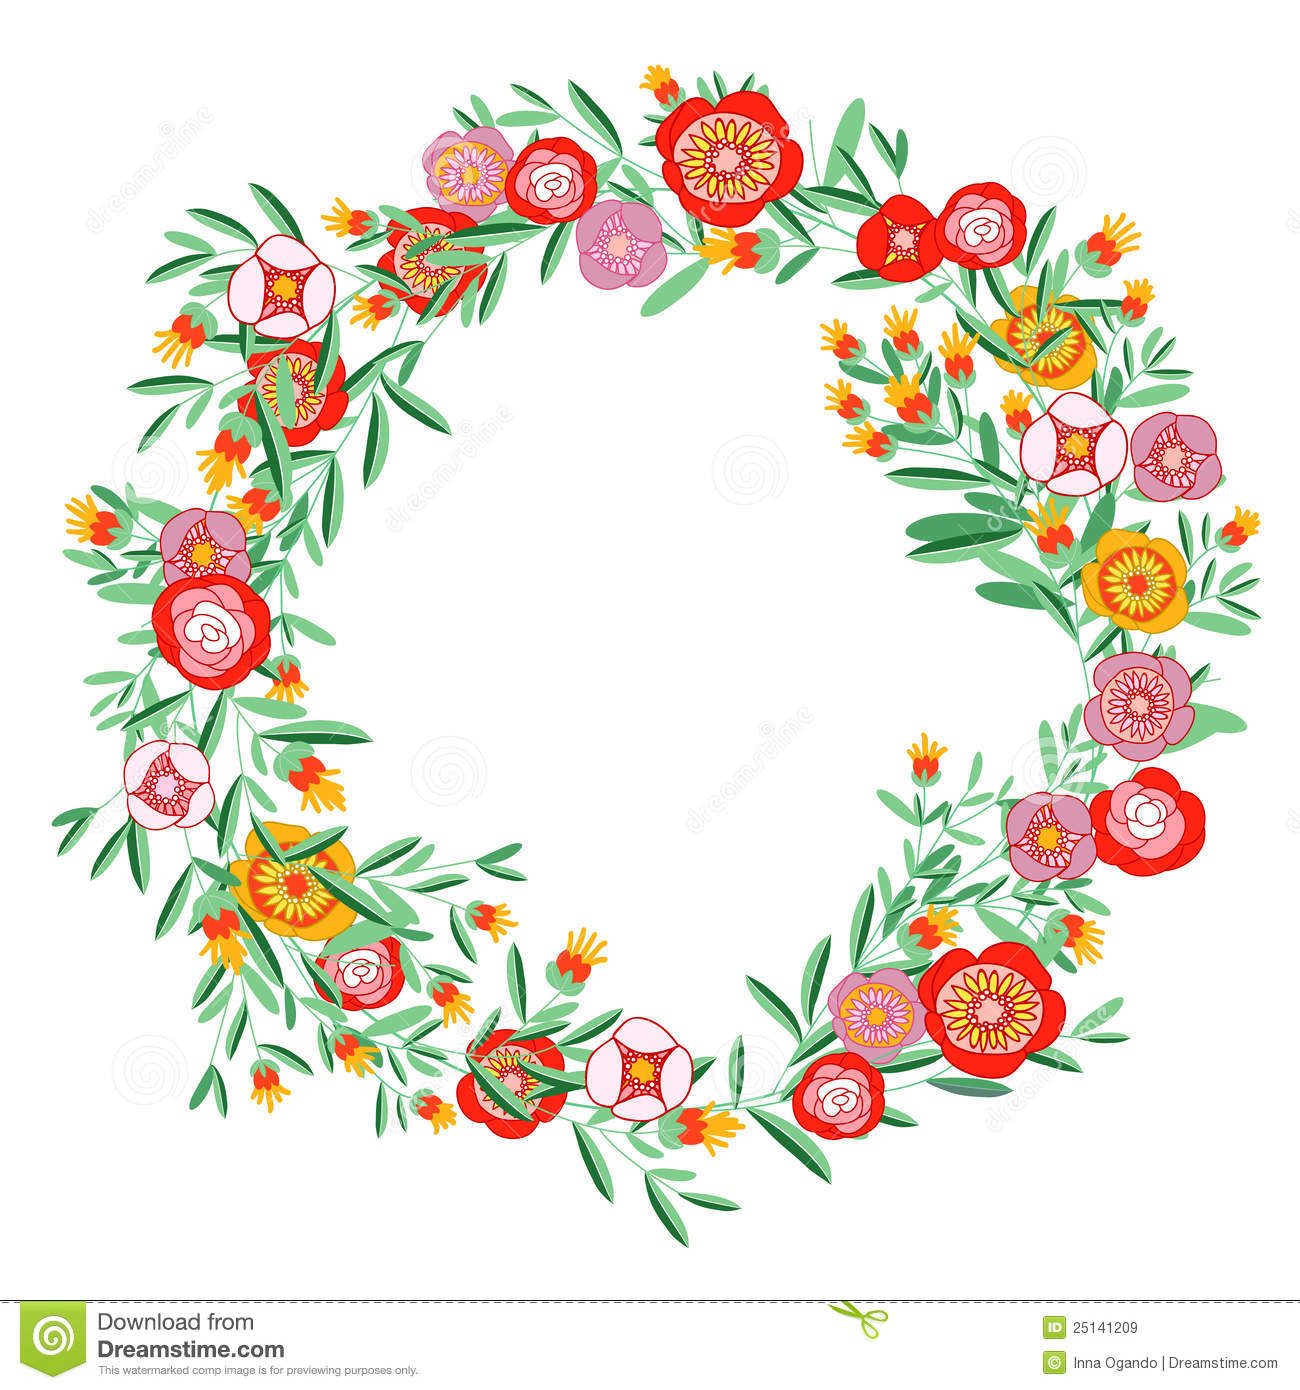 Coral floral twig wreath clipart.